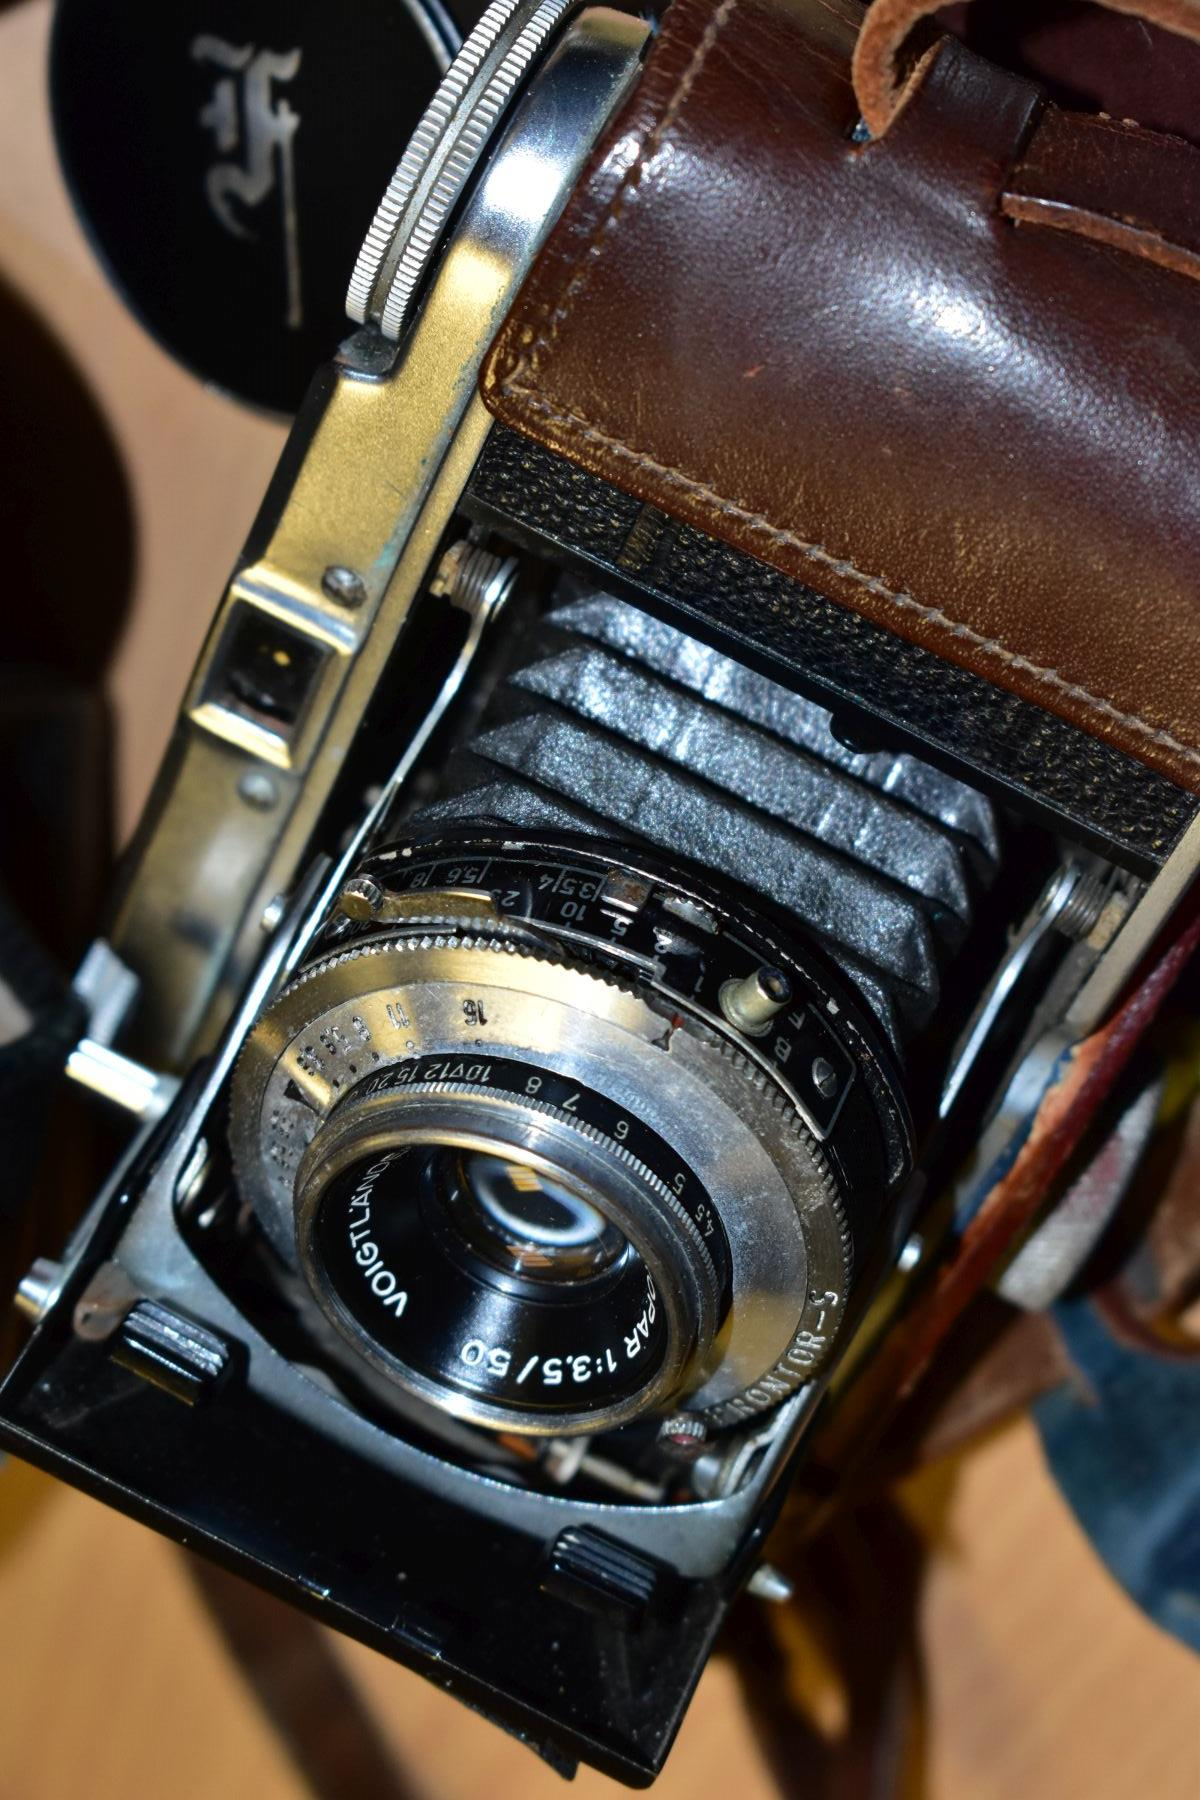 AN ORIGINAL OLYMPUS F HALF FRAME FILM CAMERA fitted with a 38mm f1.8 Olympus Zuiko lens and F T - Image 11 of 11